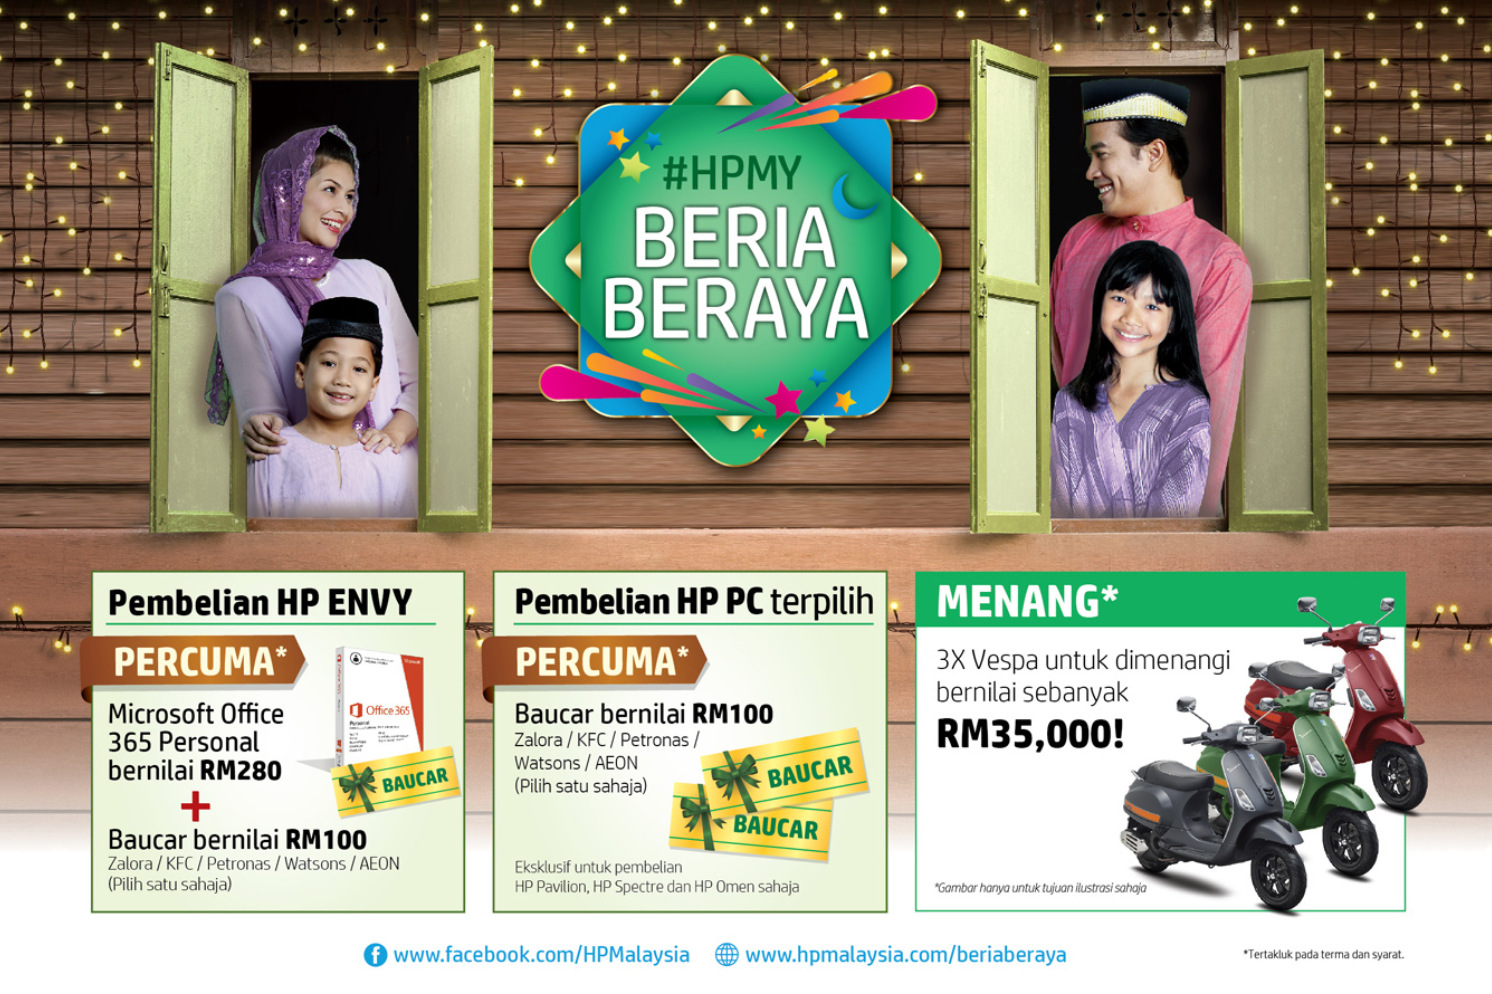 Hp Beria Beraya Win Vespa Scooter And Shopping Vouchers Frpm Zalora Kfc Petronas Watsons Or Aeon Worth Rm